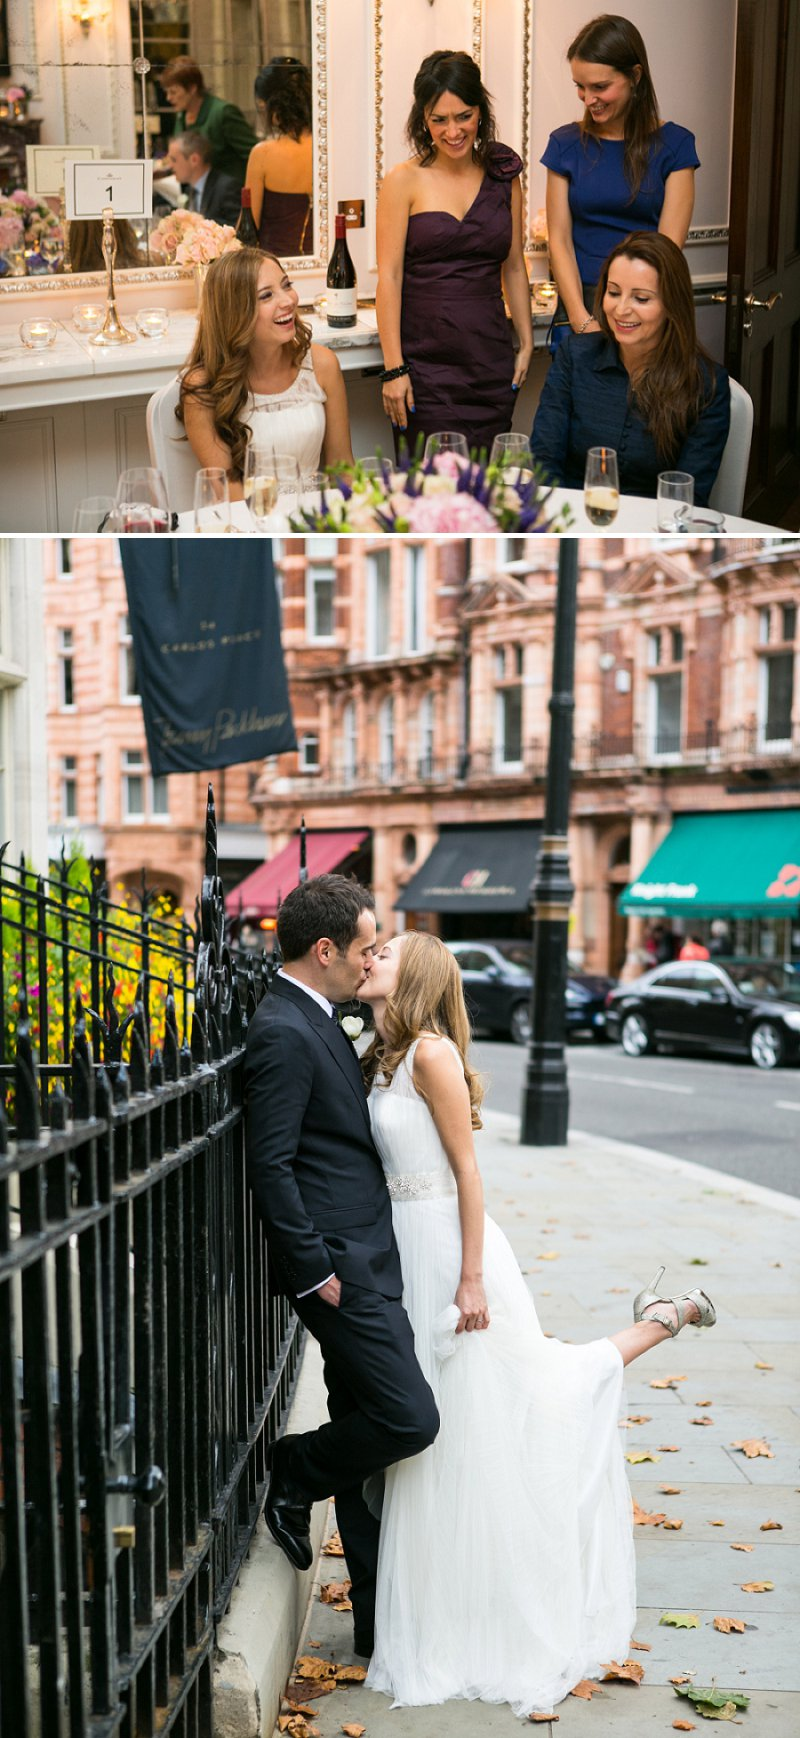 Elegant Wedding At The Connaught Hotel Mayfair With Bride In Derby By Pronovias With Jimmy Choo Sandals And Groom In Navy Suit By D&G With A Colombian Themed Evening Party At Icetank Covent Garden With Images From Anneli Marinovich 5